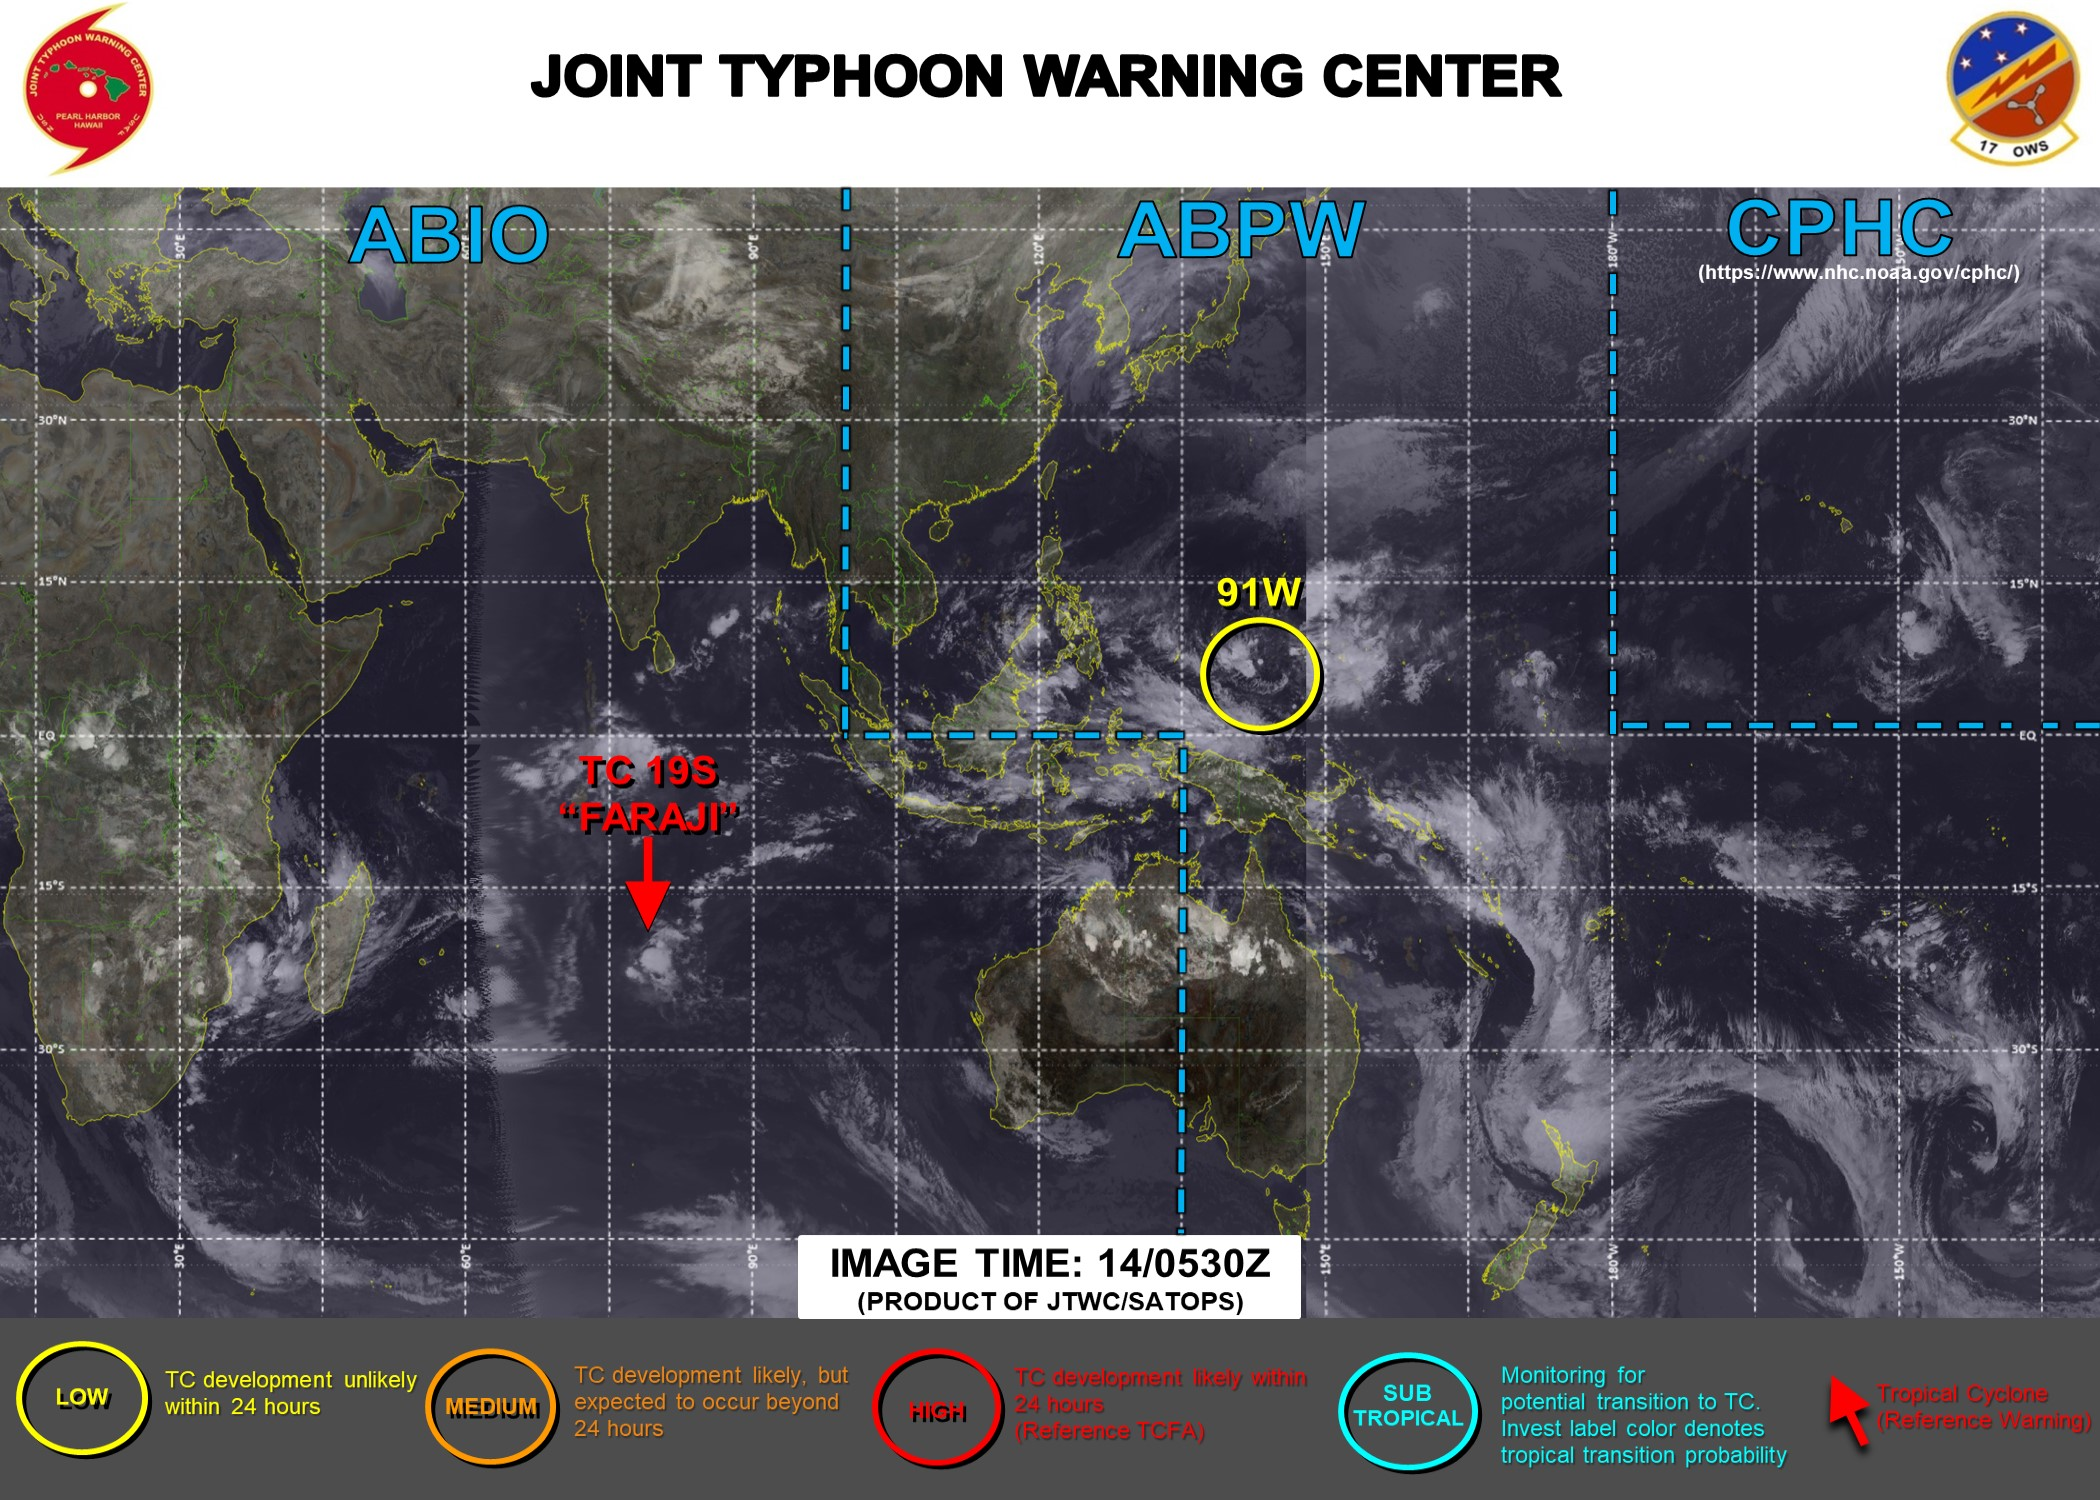 14/06UTC. JTWC HAS ISSUED WARNING 19/FINAL ON 19S(FARAJI). 3 HOURLY SATELLITE BULLETINS ARE ISSUED FOR 19S AND INVEST 93S (MOZAMBIQUE CHANNEL).